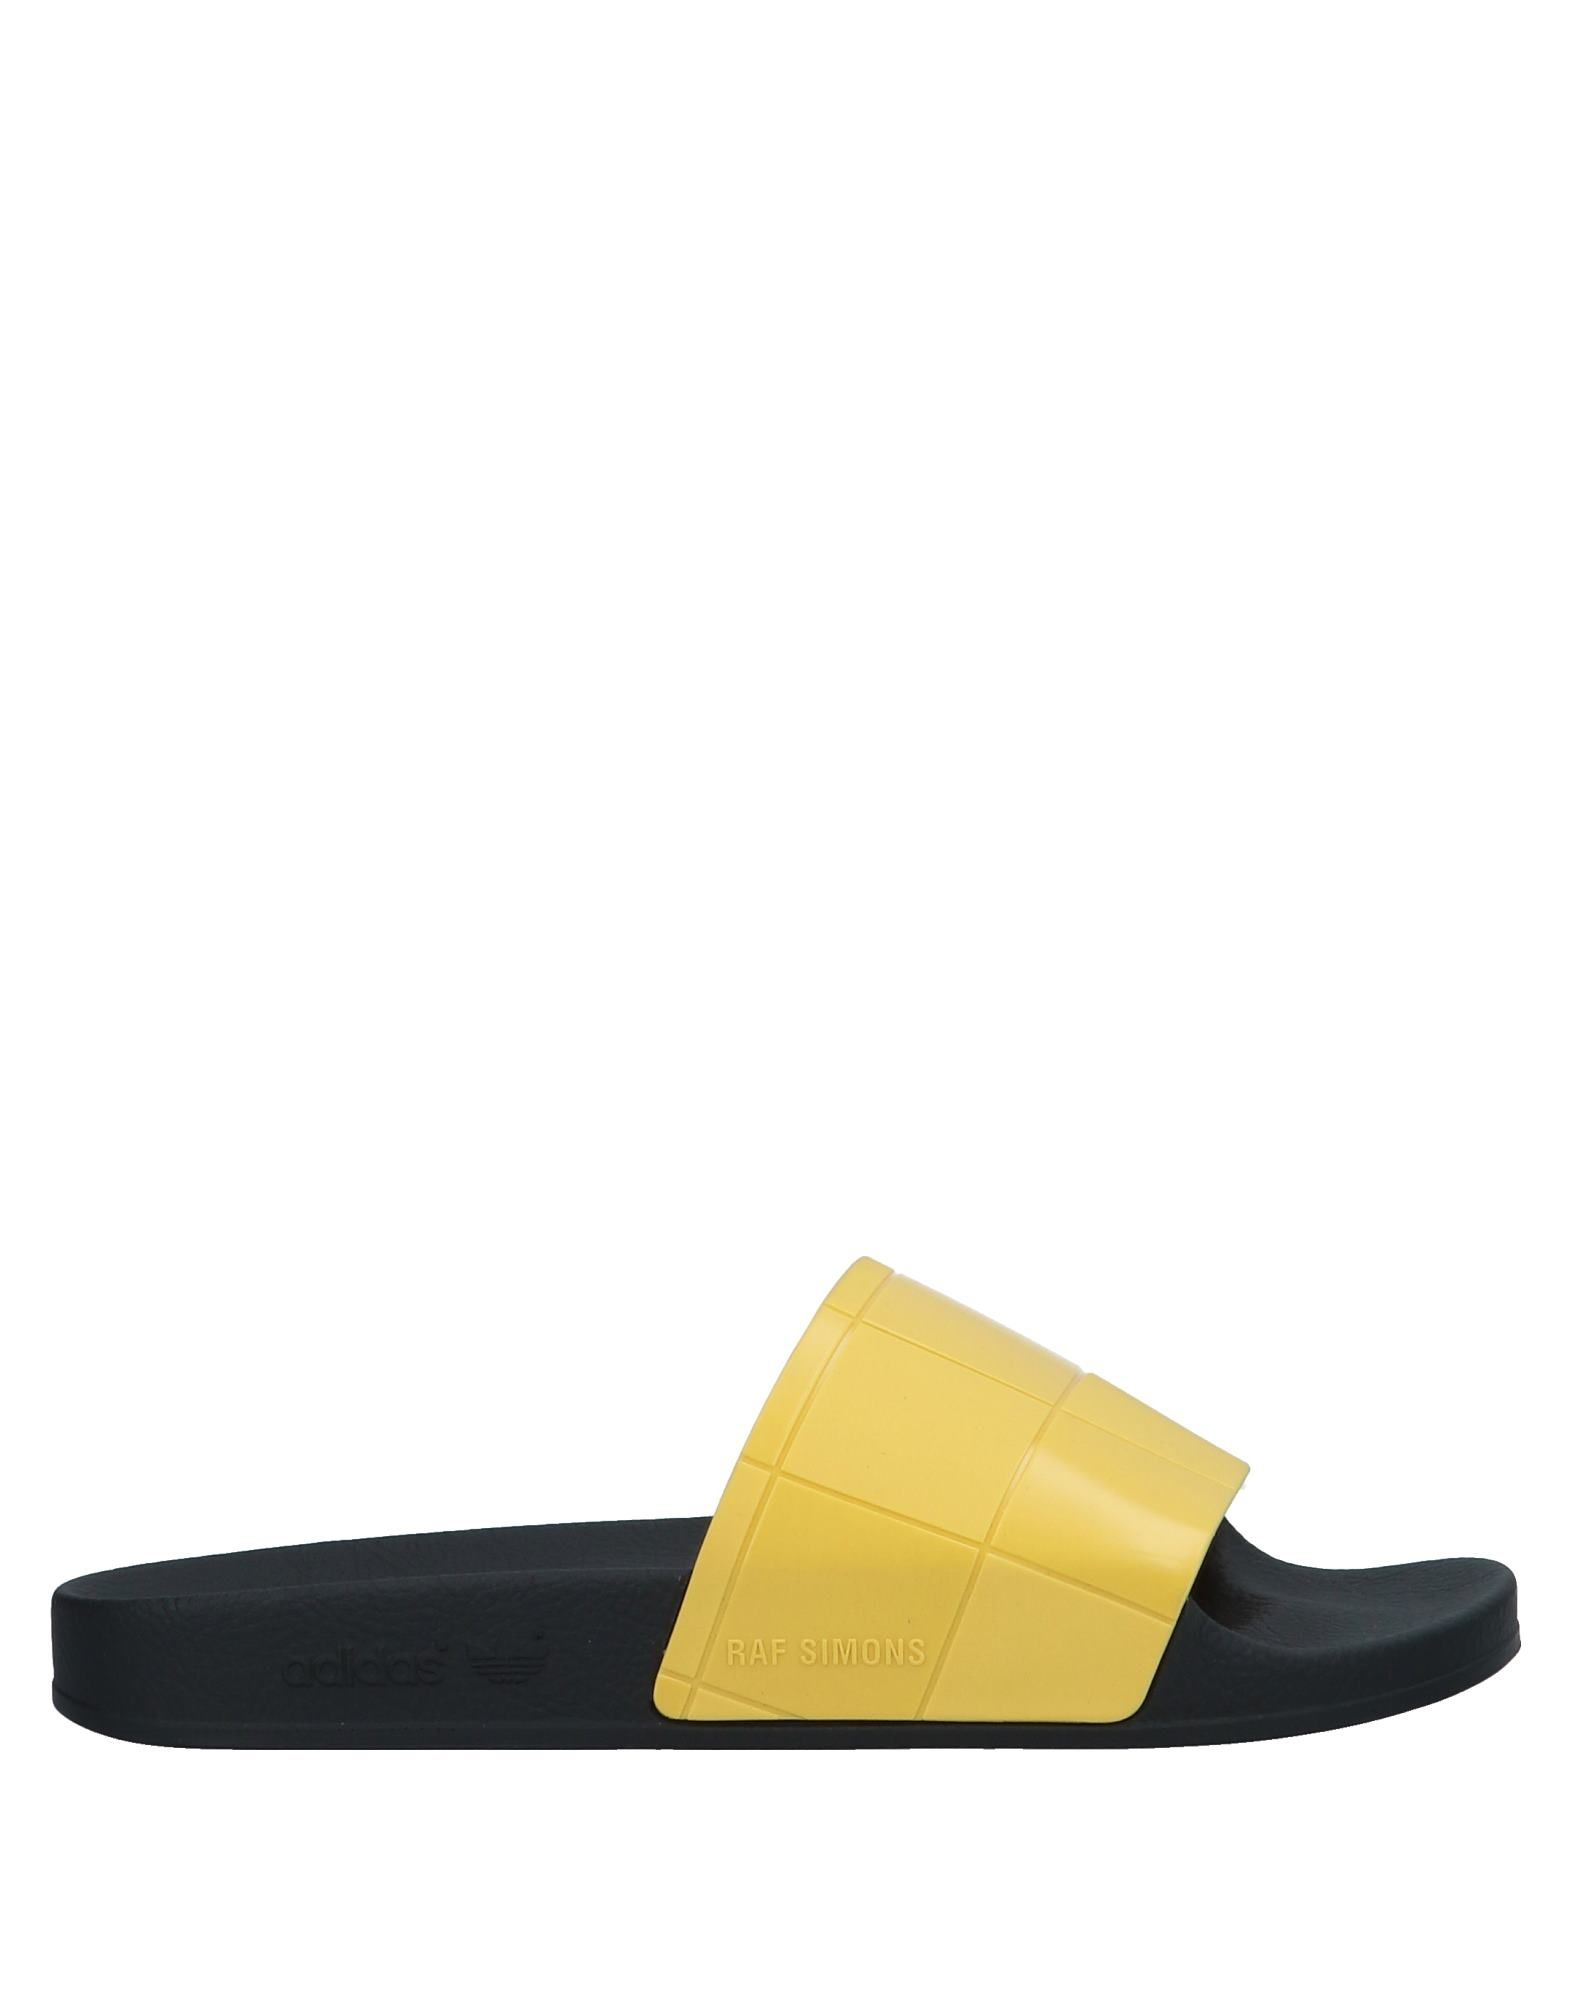 aaac1e76c6d8 Adidas By Raf Simons Raf Simons For Adidas Women s Adilette Checkerboard  Slide Sandals In Black